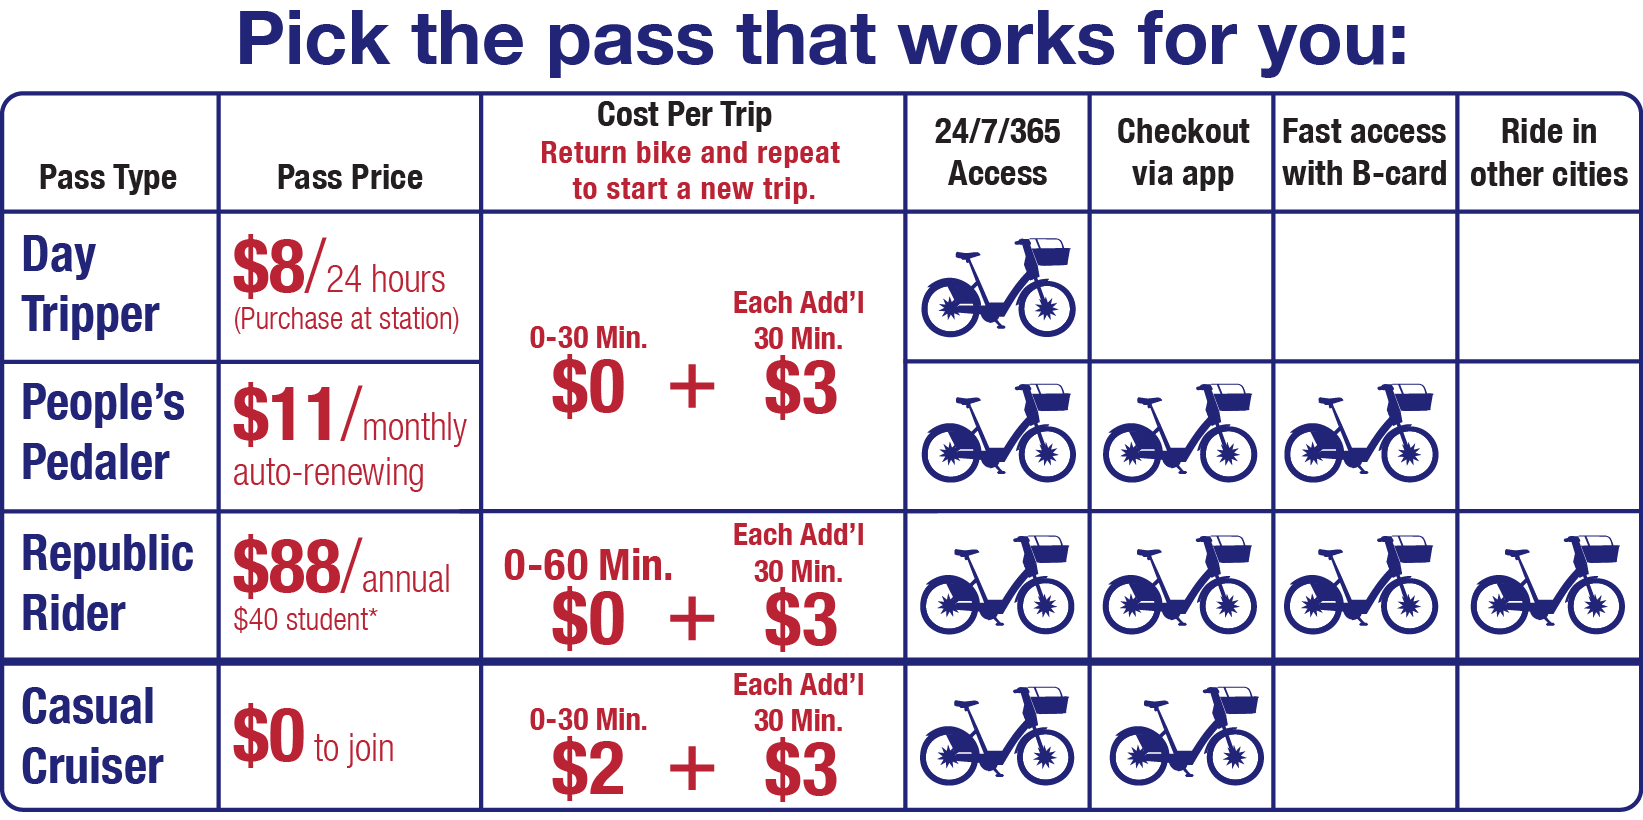 Pick the pass that works for you